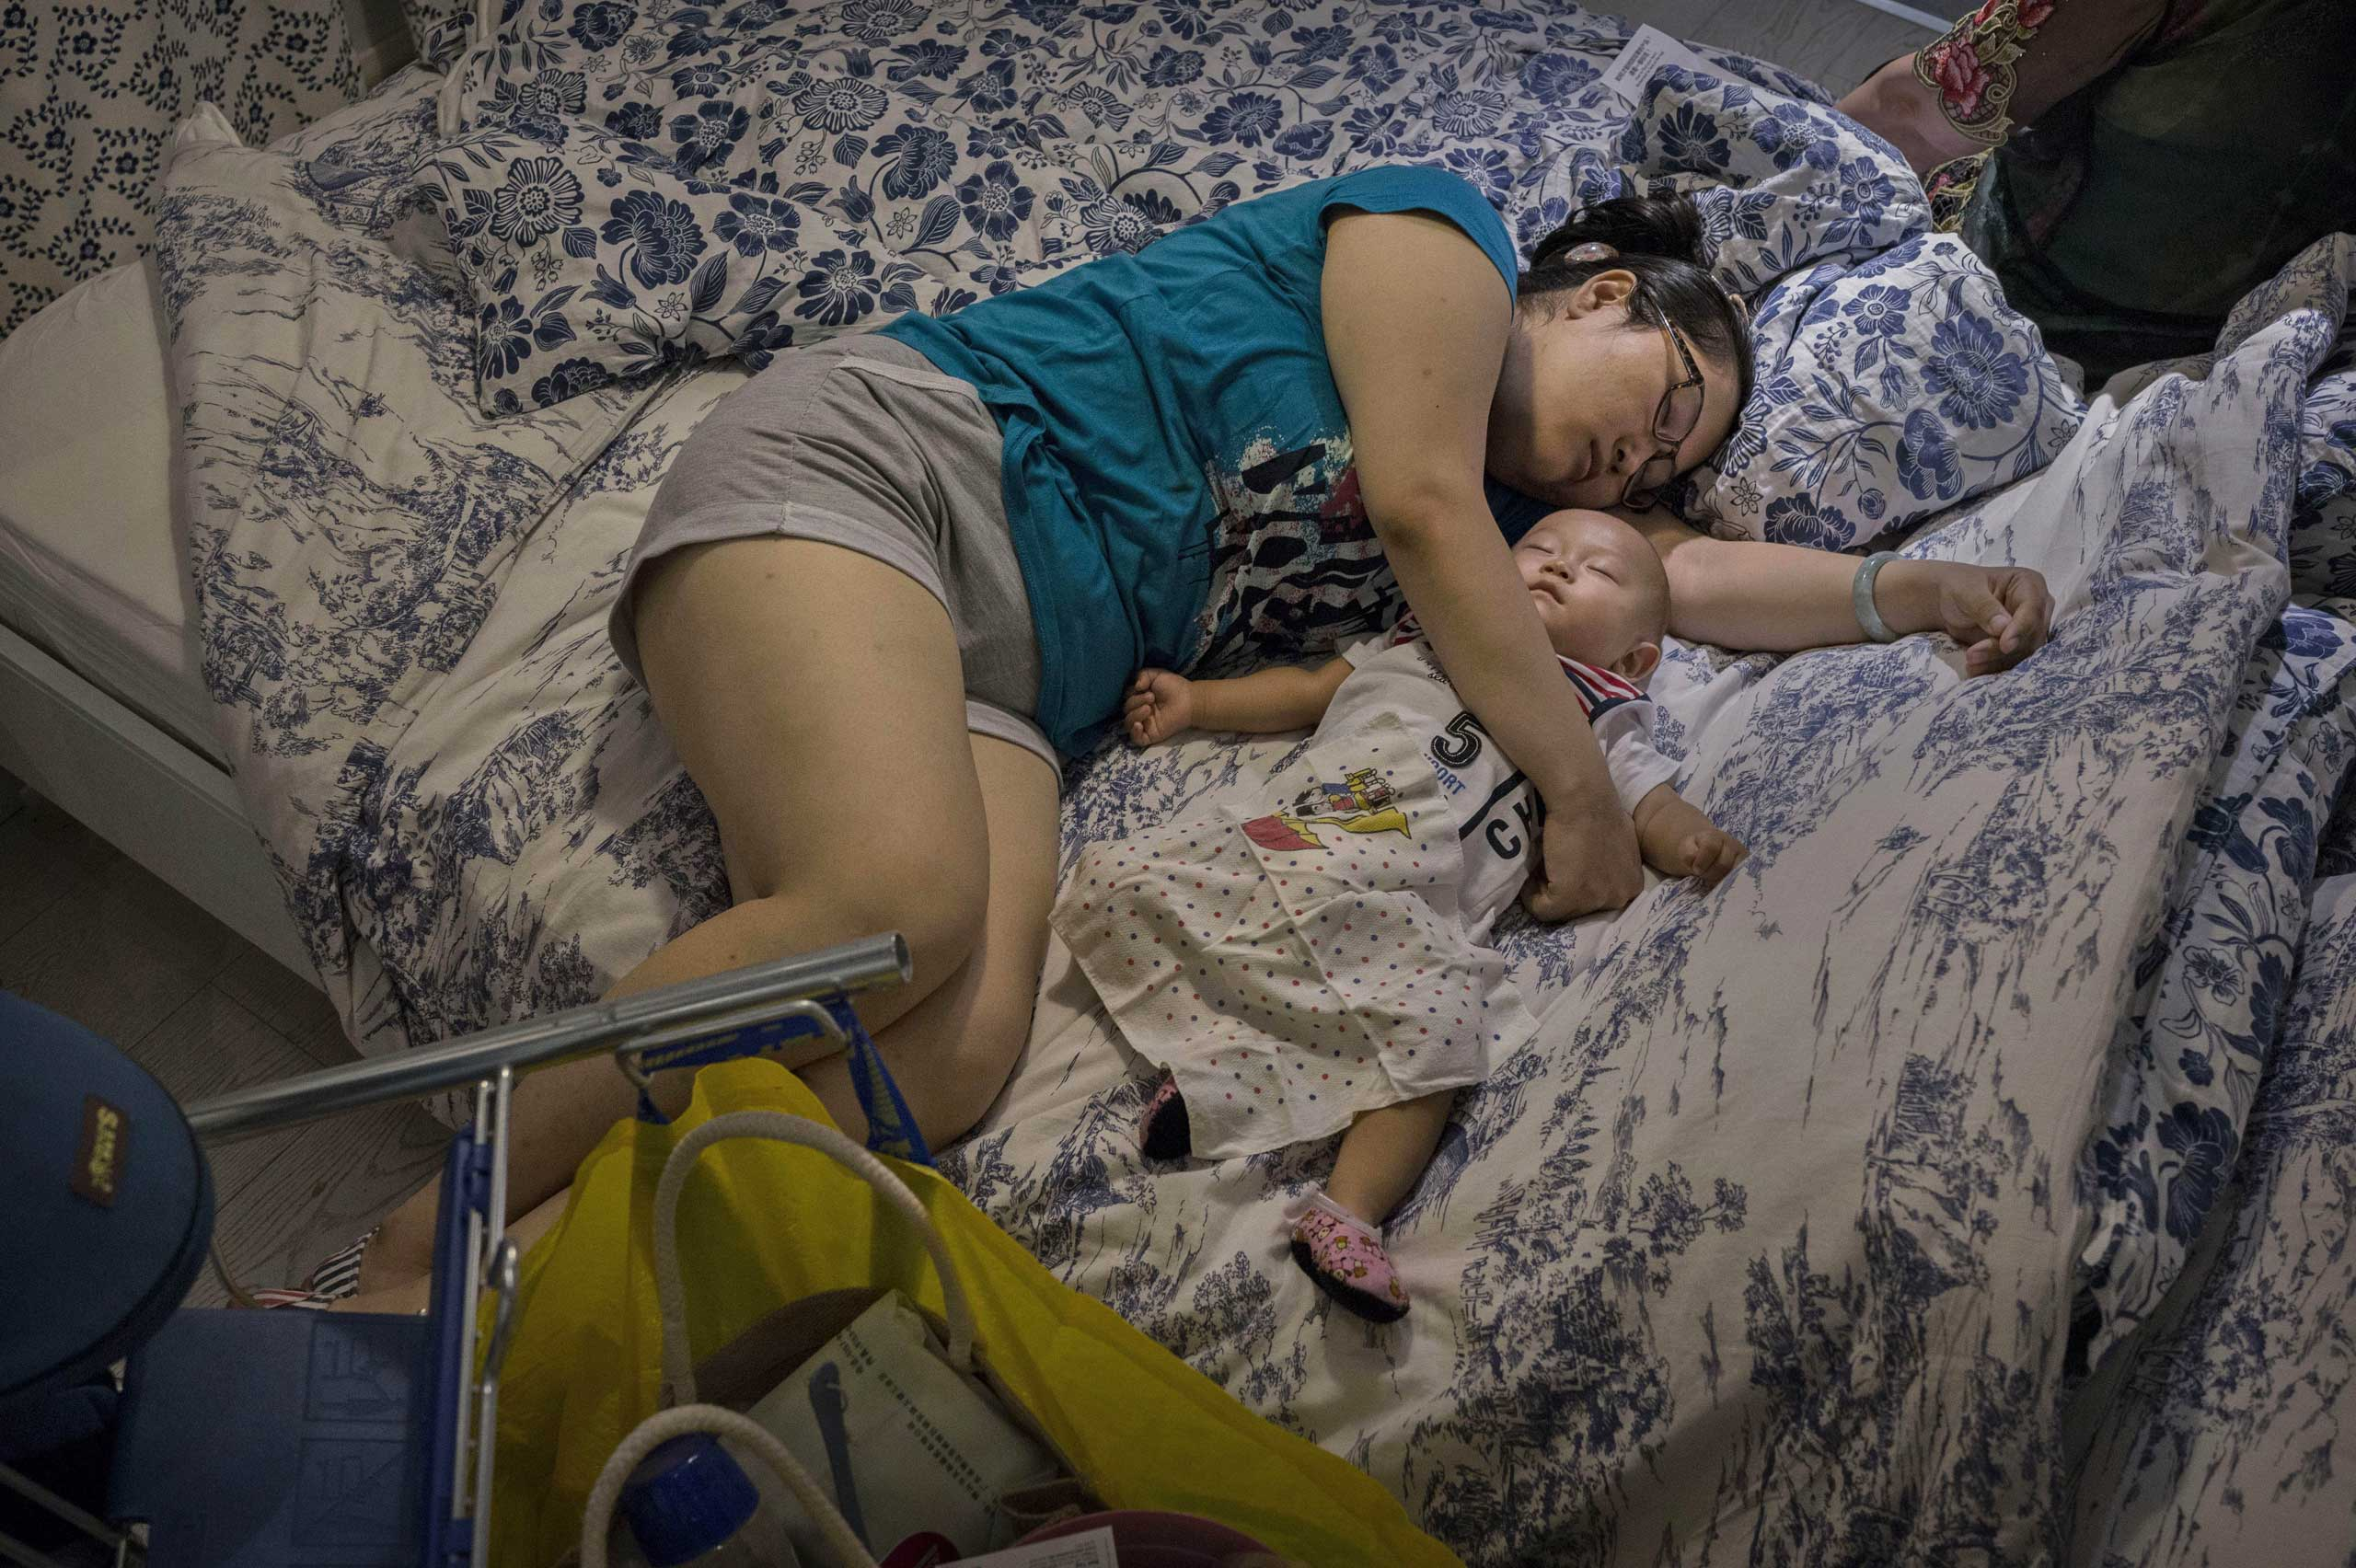 A Chinese shopper sleeps with her child on a bed in the showroom of an IKEA store in Beijing, July 6, 2014.